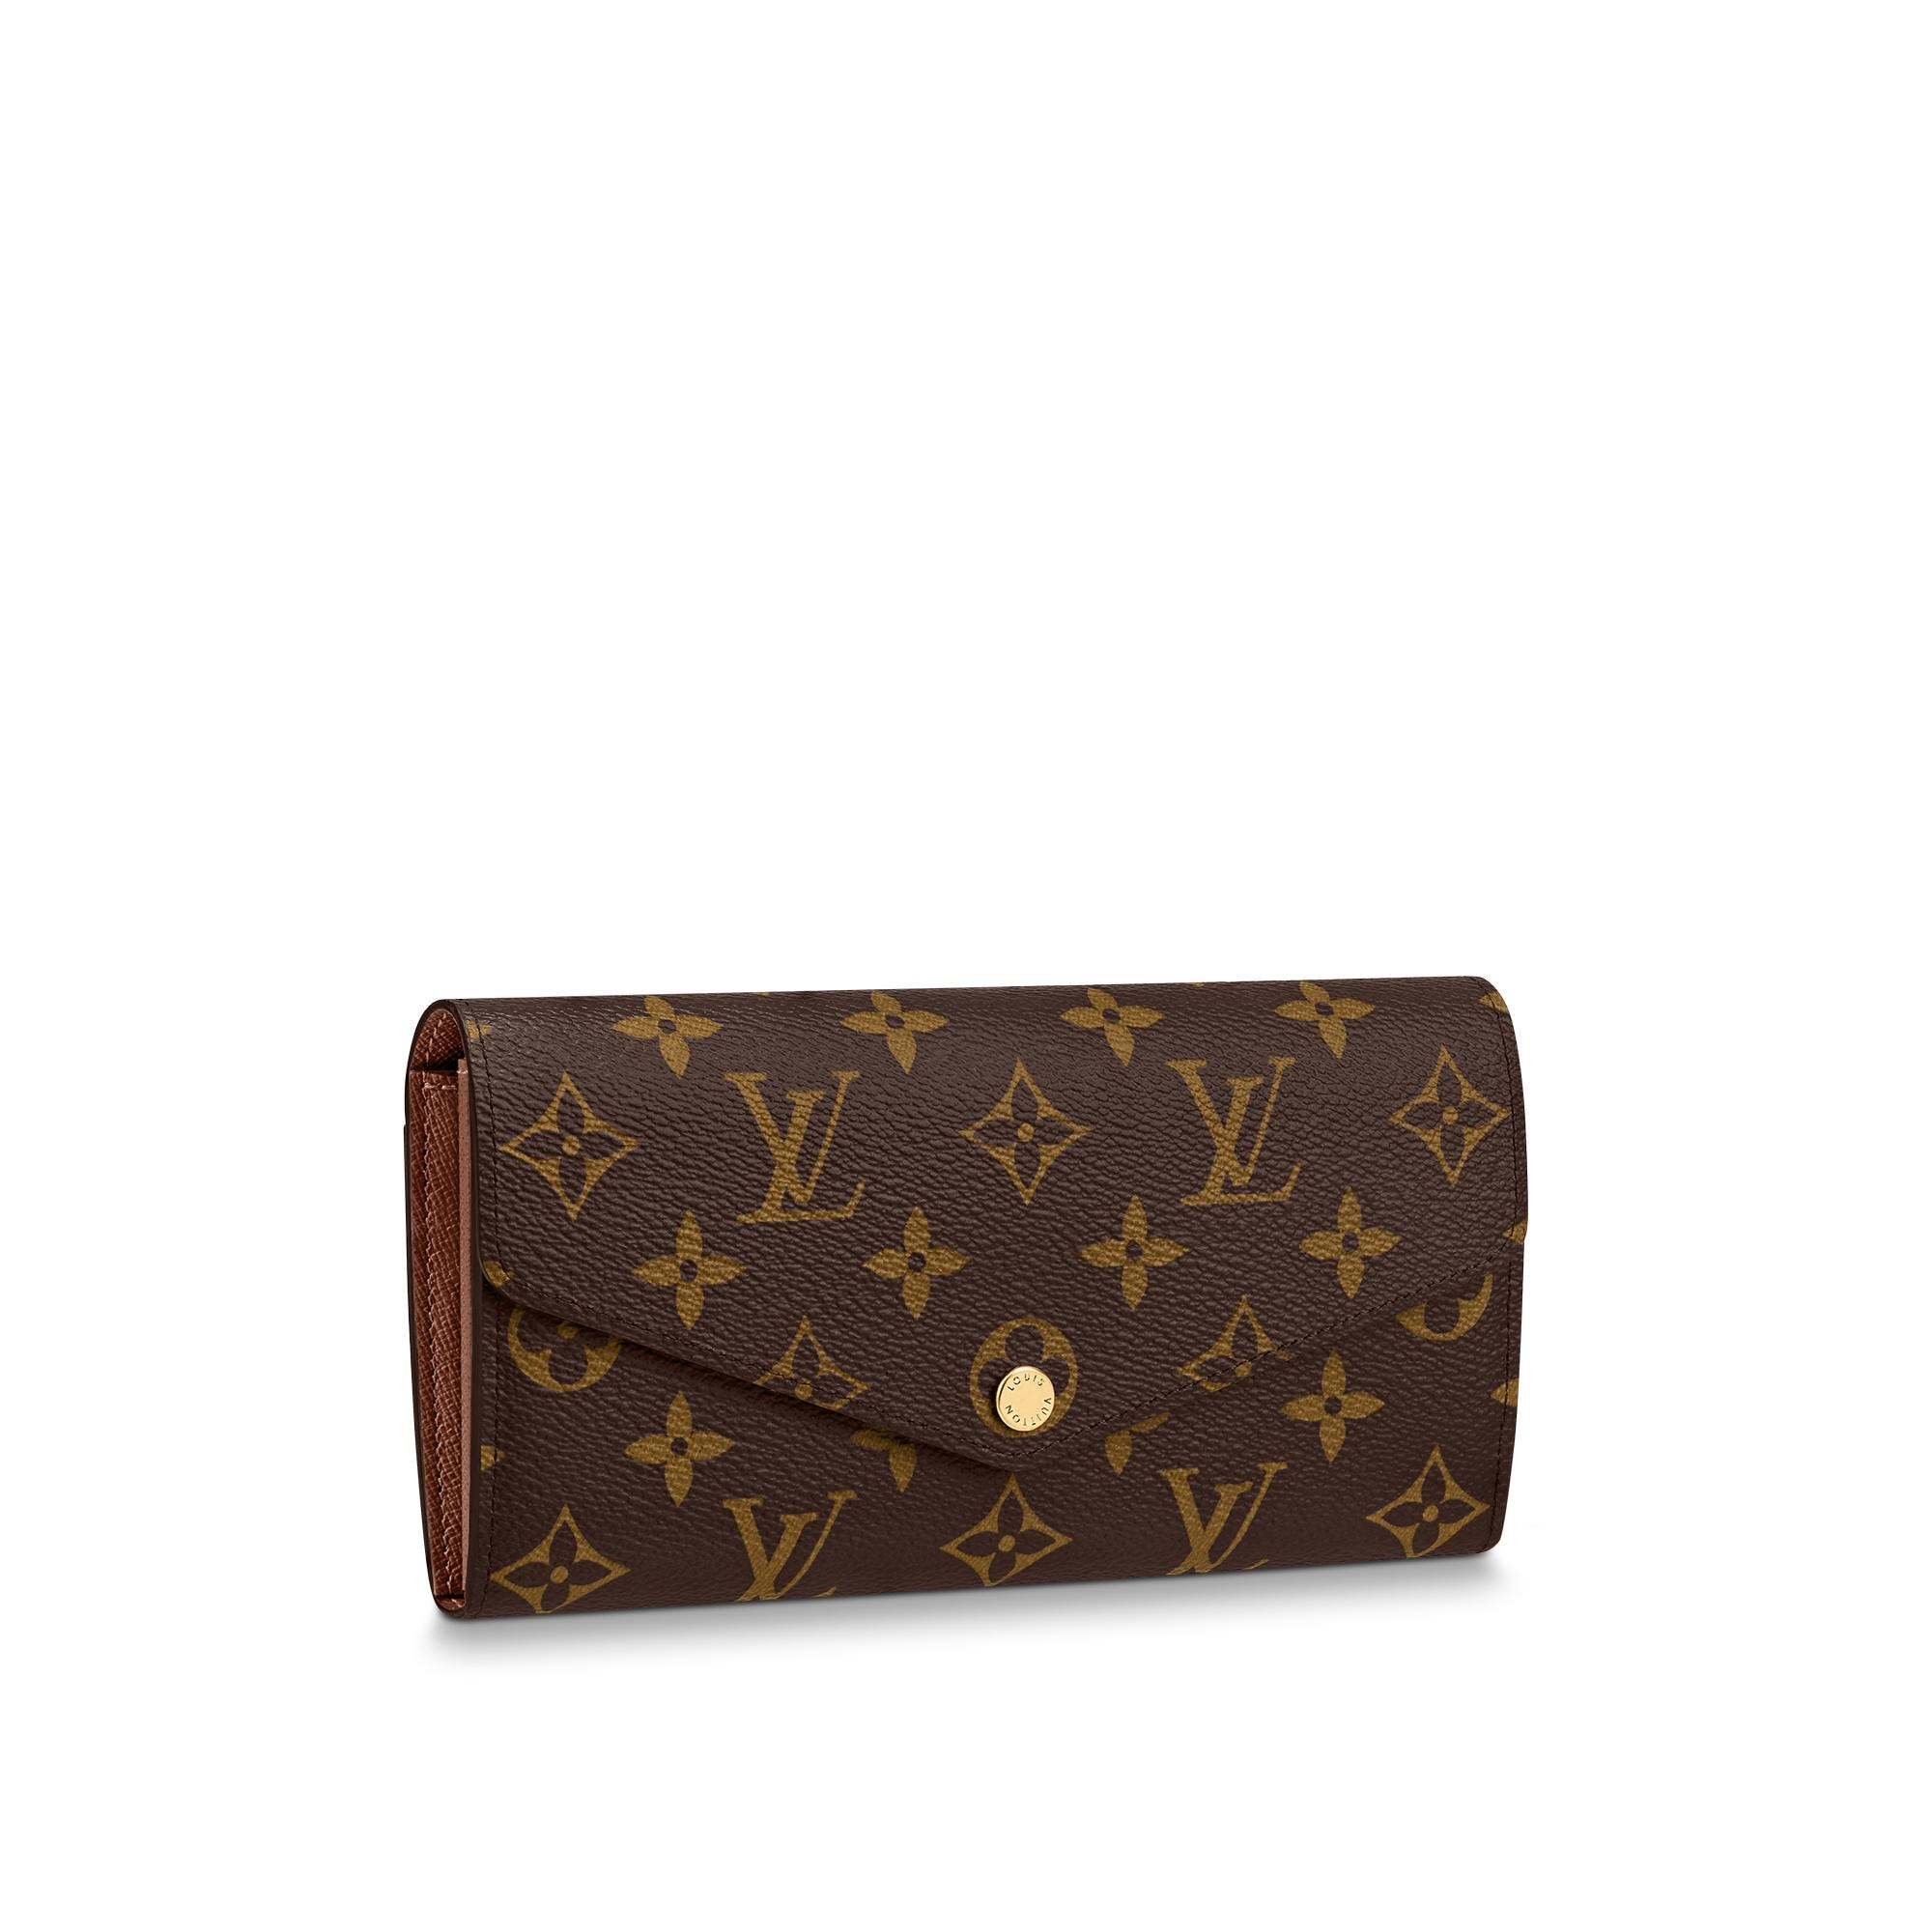 Sarah Wallet Monogram Canvas  SMALL LEATHER GOODS  LOUIS